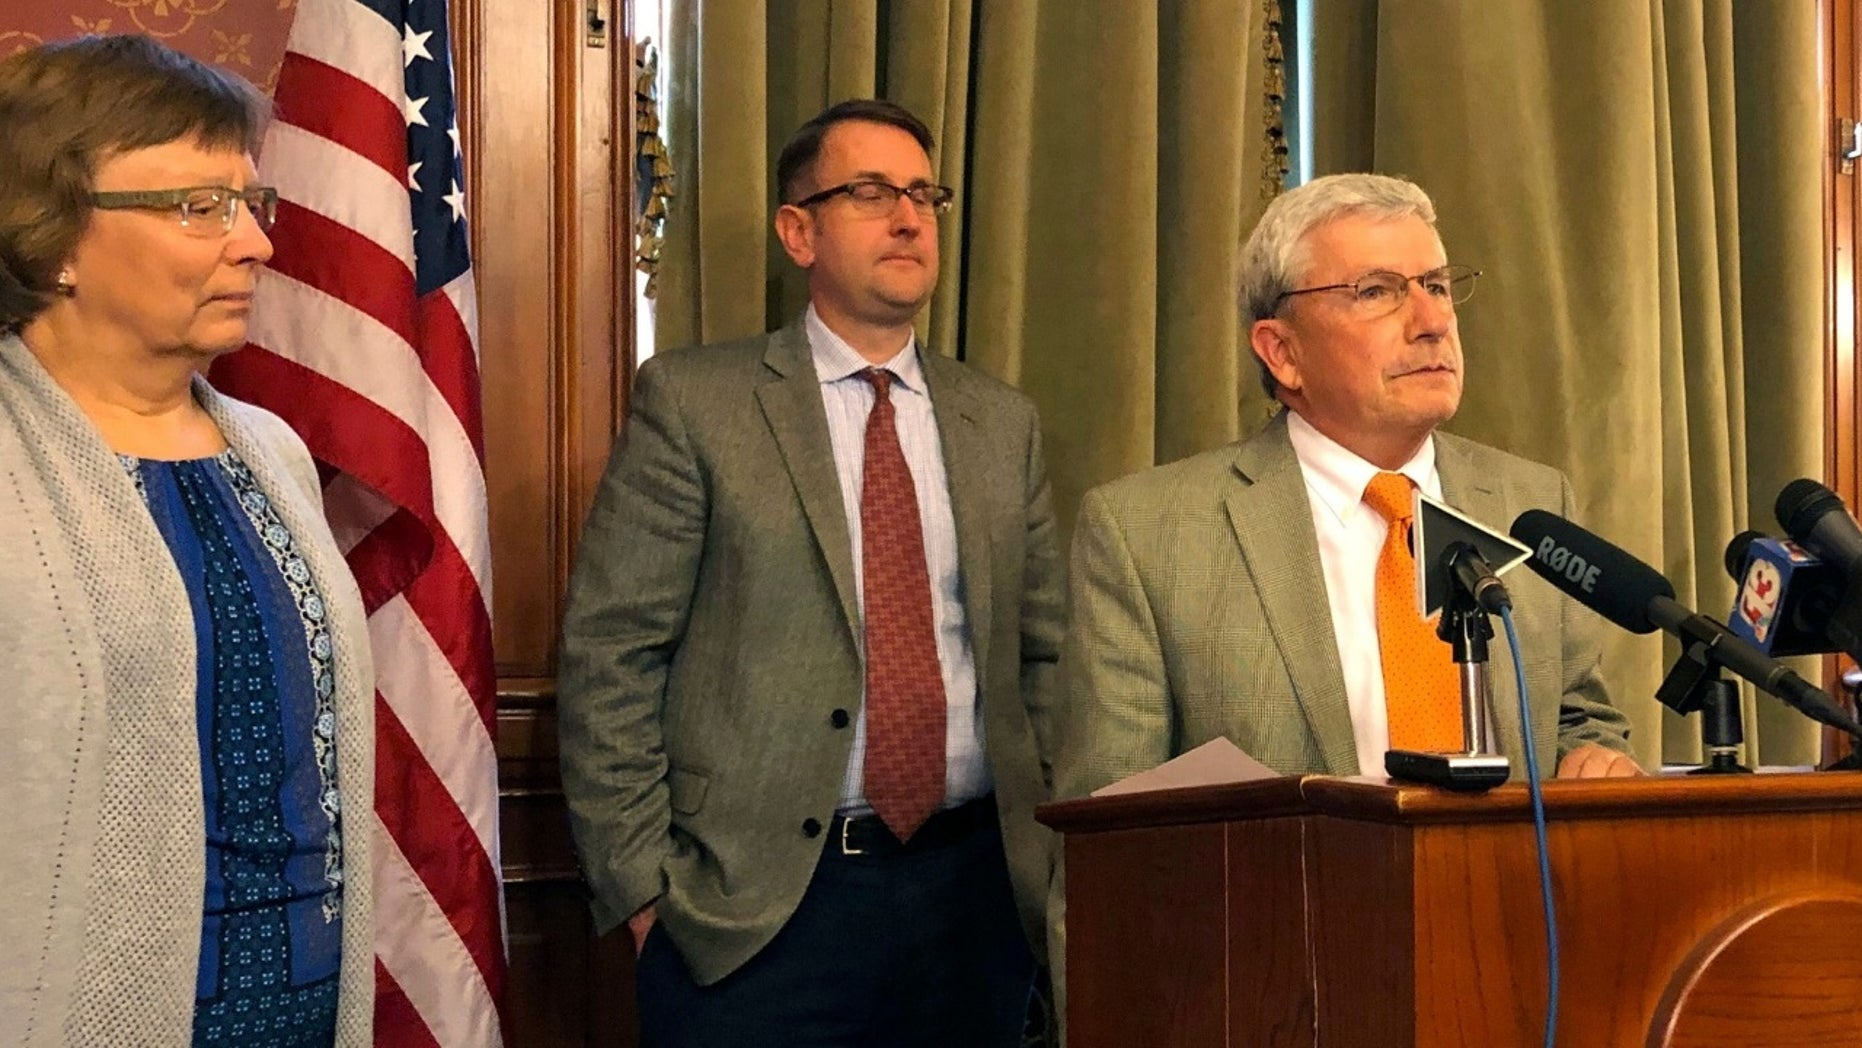 Rep. Andy McKean, right, the longest-serving Republican in the Iowa Legislature announced Tuesday that he's becoming a Democrat, saying he didn't want to remain in a party led by President Trump.